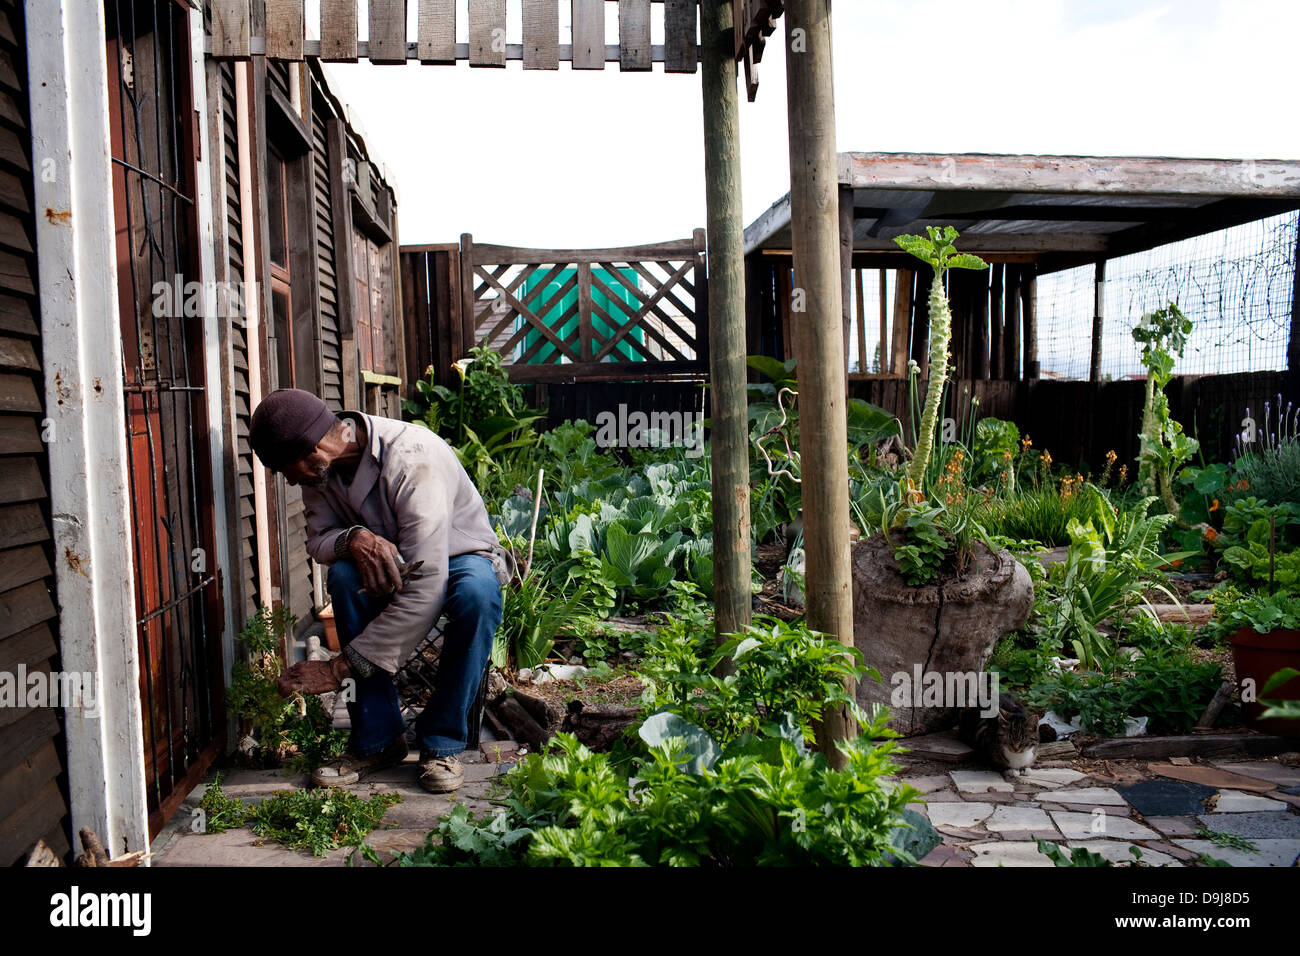 bfcaf0a18f Charles completed Soil Life training program 3 years ago He has created  thriving vegetable garden home in Lavender Hill Cape